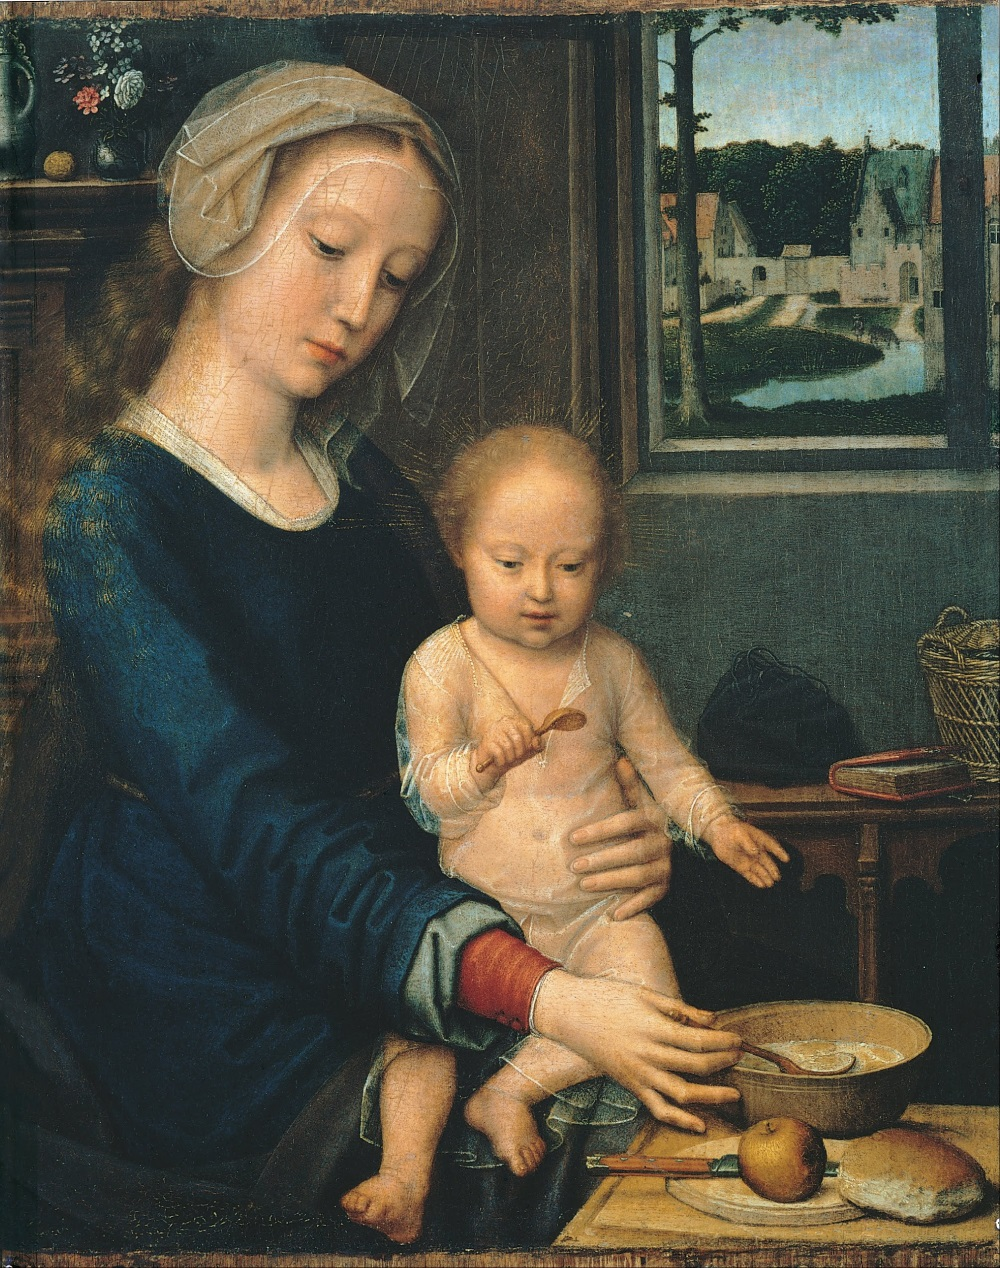 Gerard David, Virgin with the Milk Soup, c. 1510-15. Collection of the Musei di Strada Nuovo, Palazzo Bianco, Genoa.